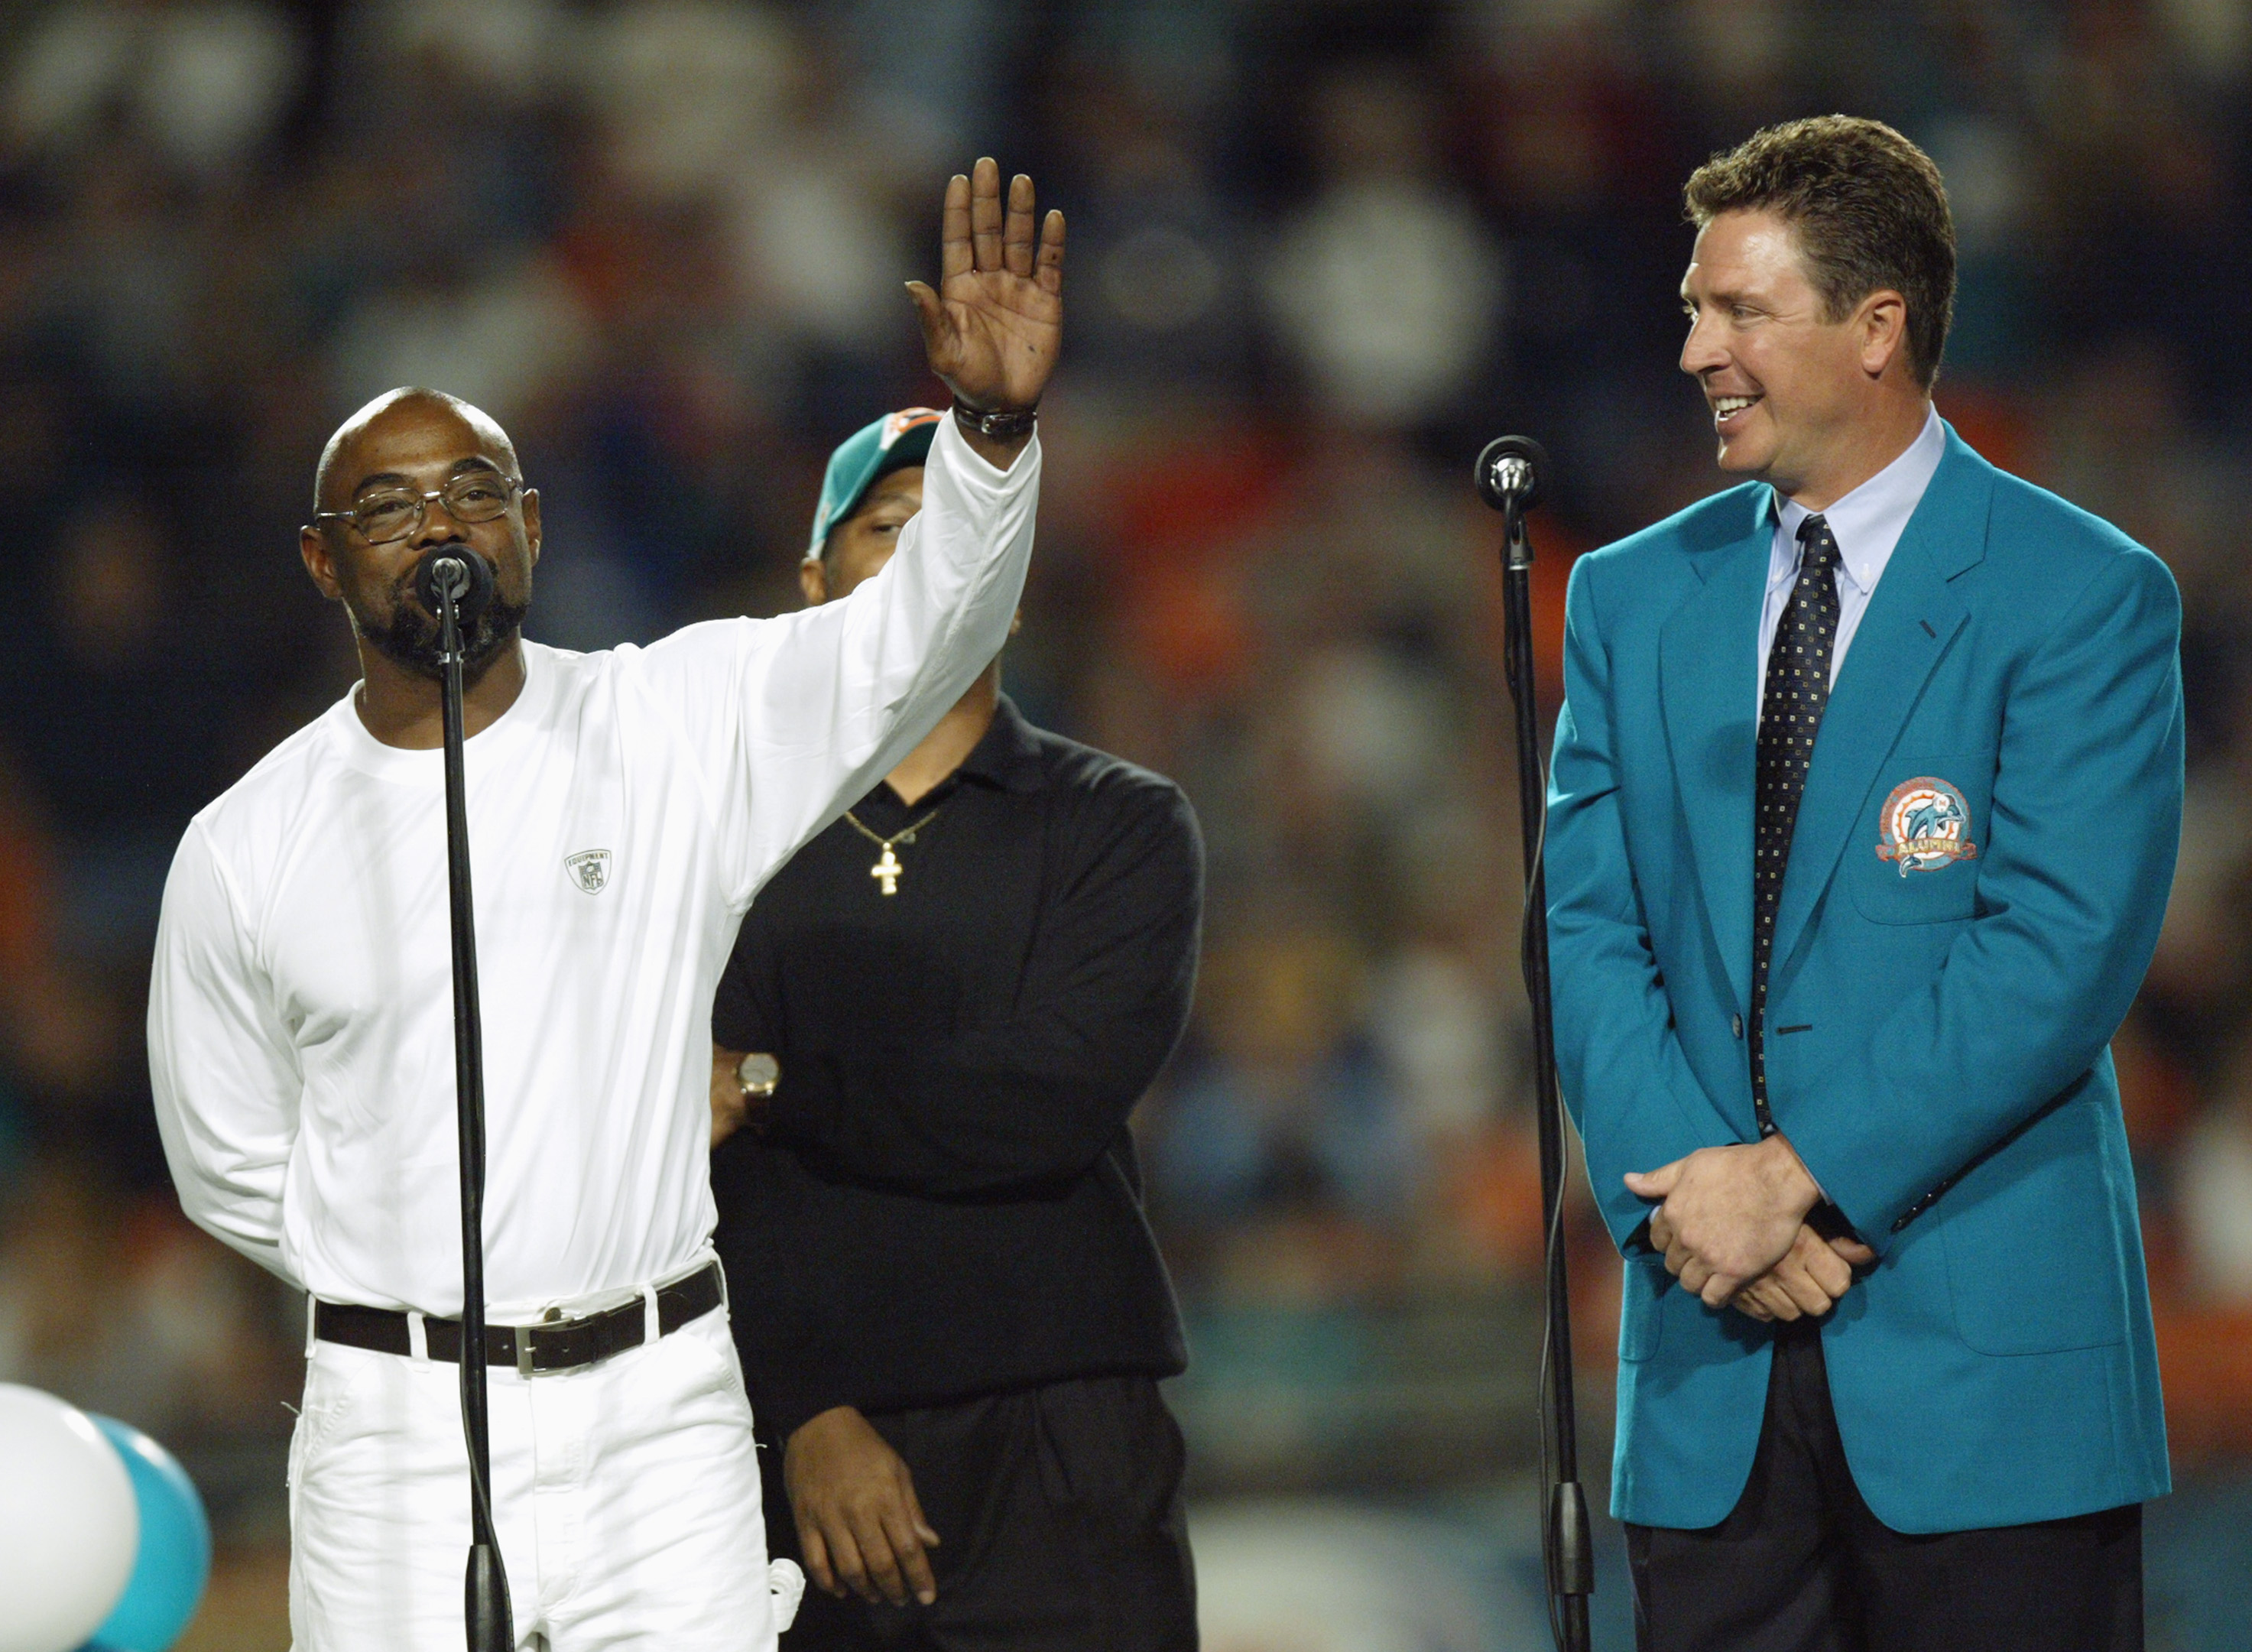 MIAMI - DECEMBER 15:  Former Miami Dolphins player Mark Duper speaks while waving to the crowd as former quarterback Dan Marino watches after Duper and teammate Mark Clayton, obscured were inducted into the Miami Dolphins Hall of Fame during half time of